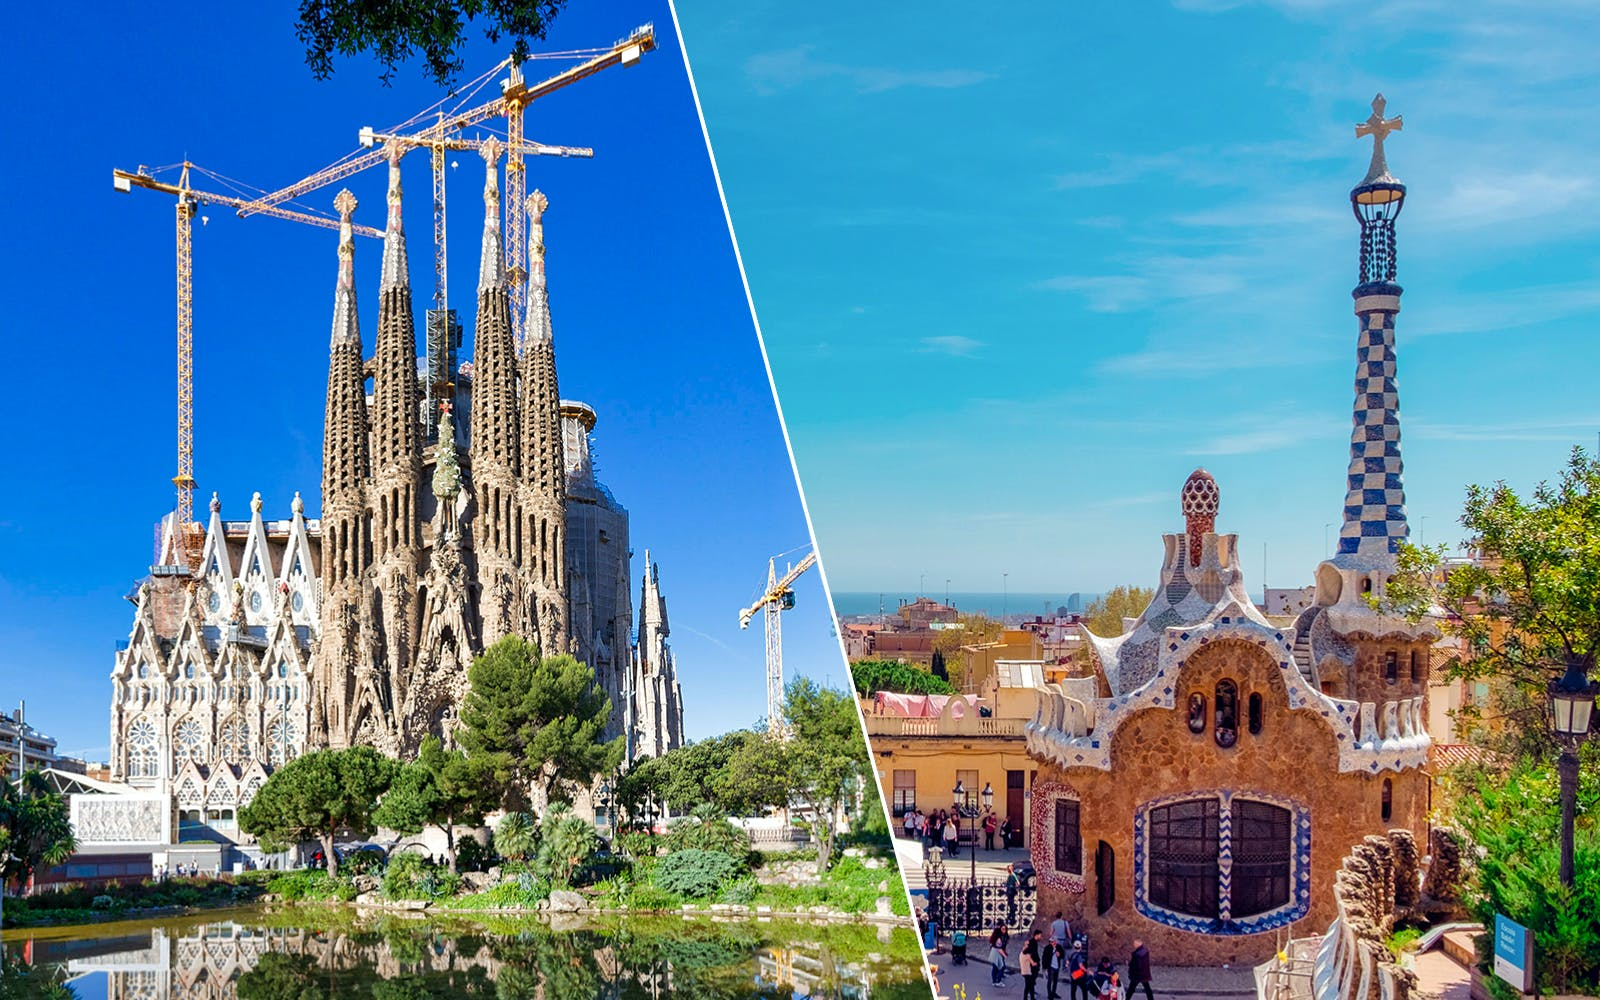 Guided Tour of Sagrada Familia and Park Güell with No Wait Entry